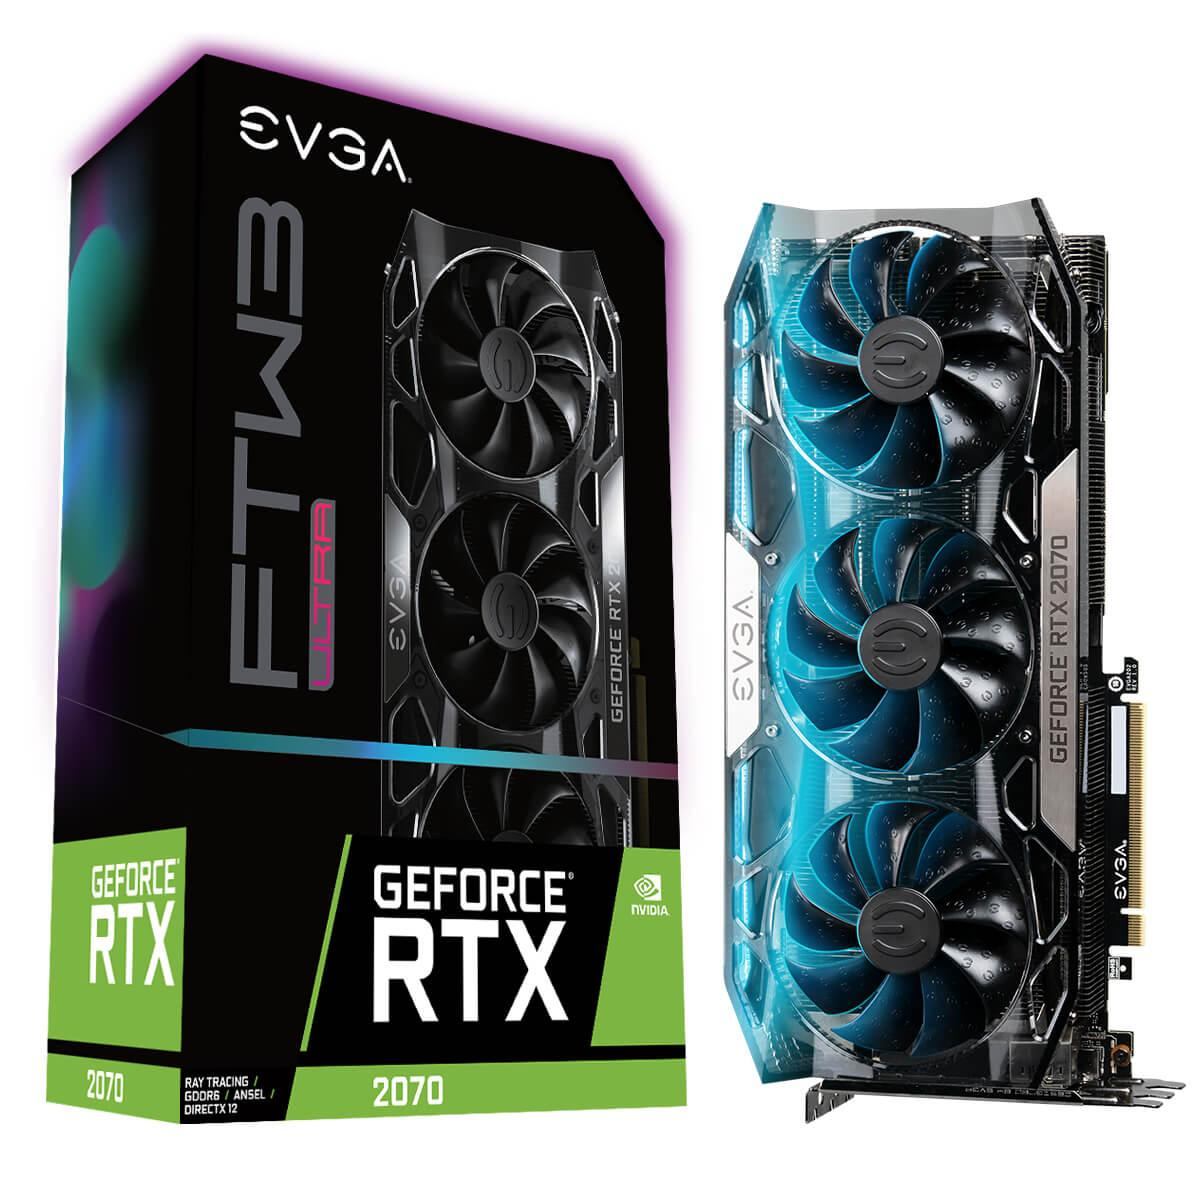 Видео карта EVGA GeForce RTX 2070 FTW3 ULTRA GAMING 8GB GDDR6 256 bit